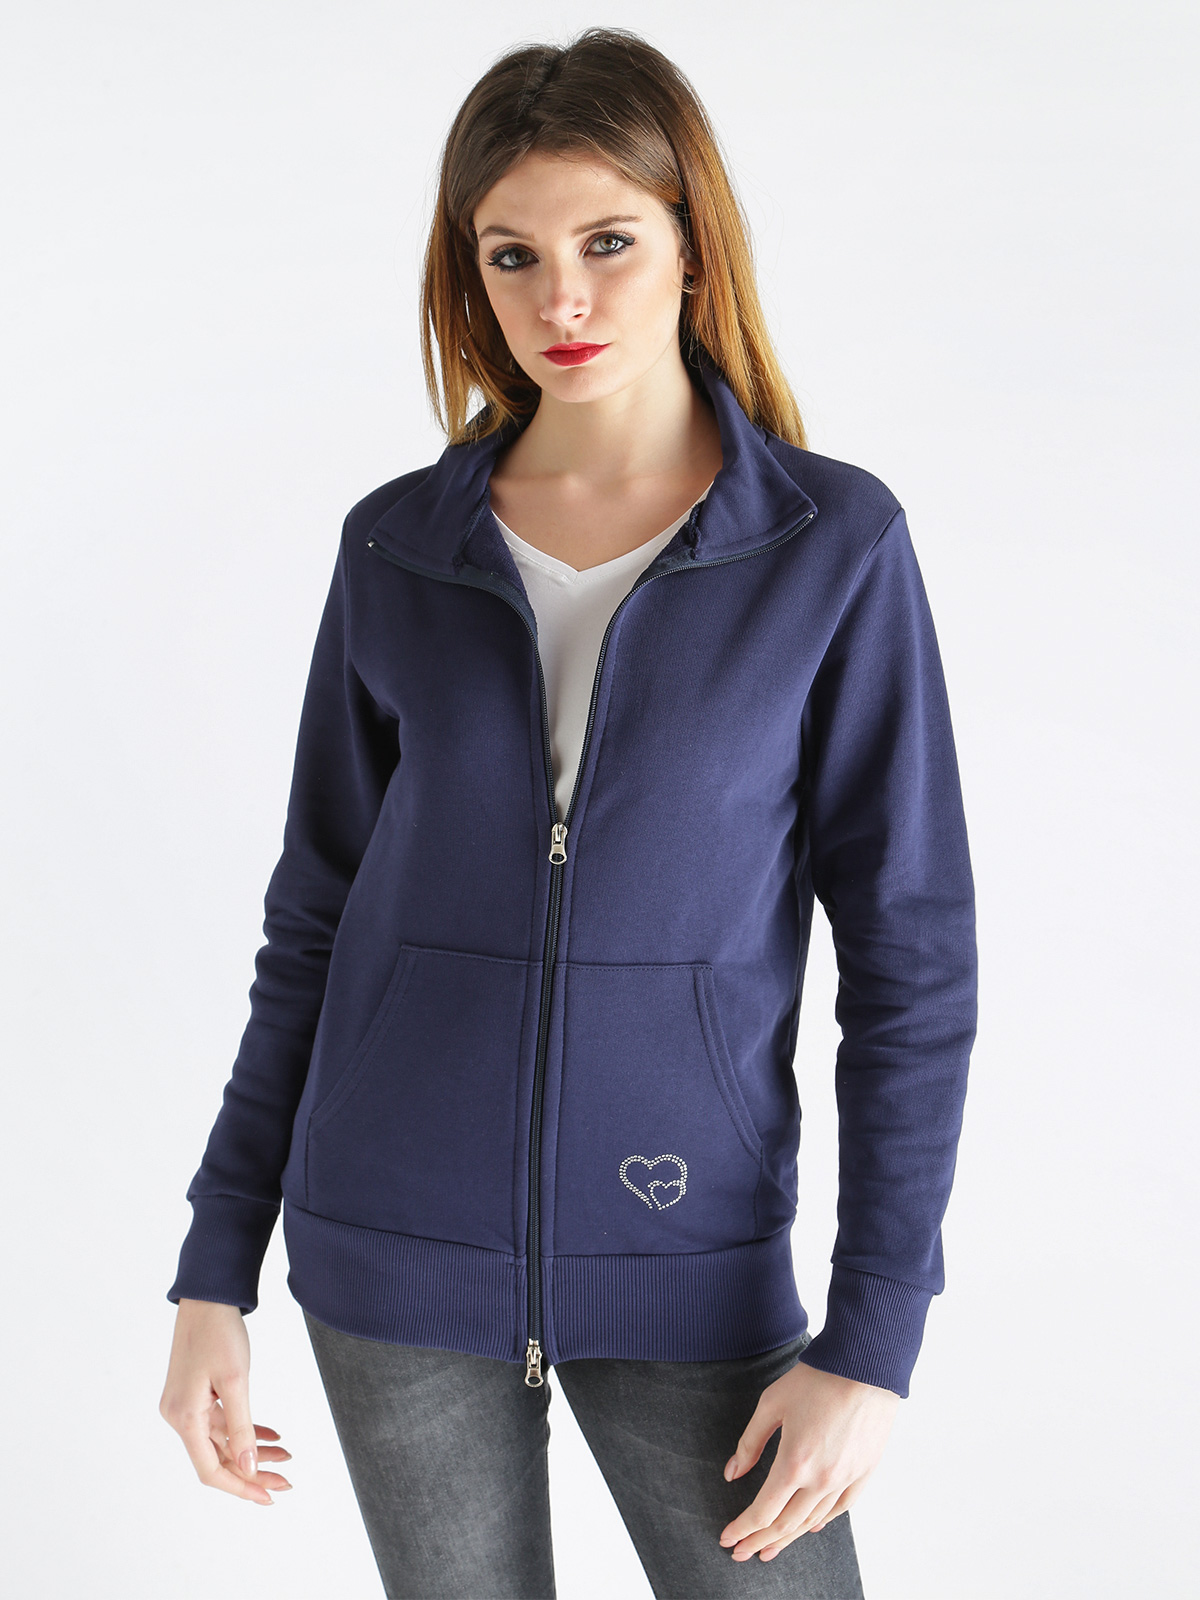 Sweatshirt With Zipper And Pockets